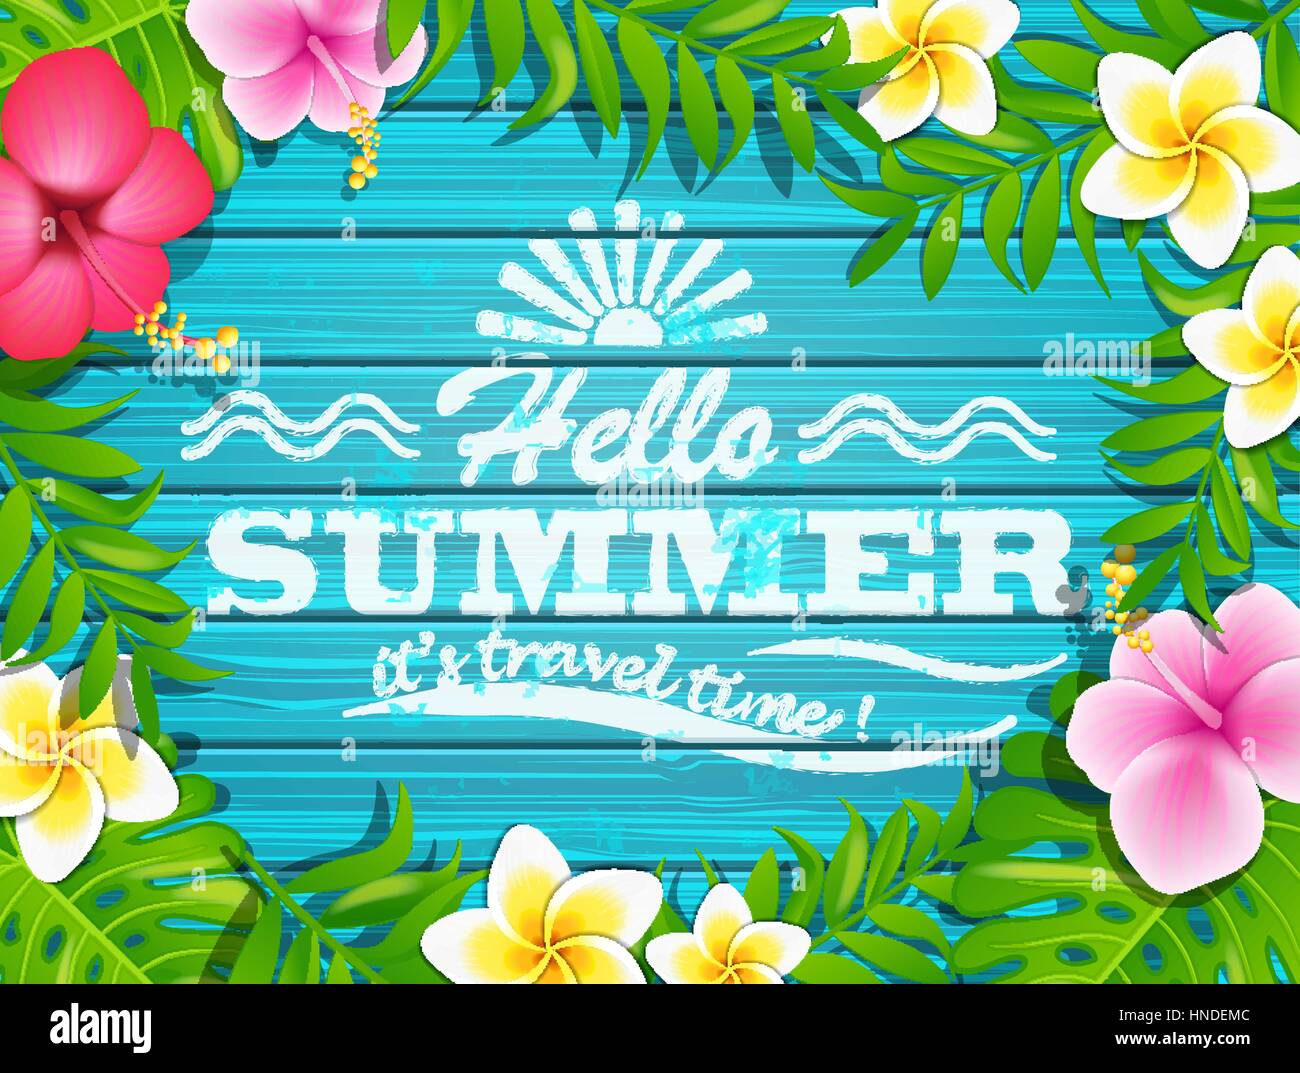 Hello summer - blue wooden background with tropical flowers and text, vector illustration. Stock Vector